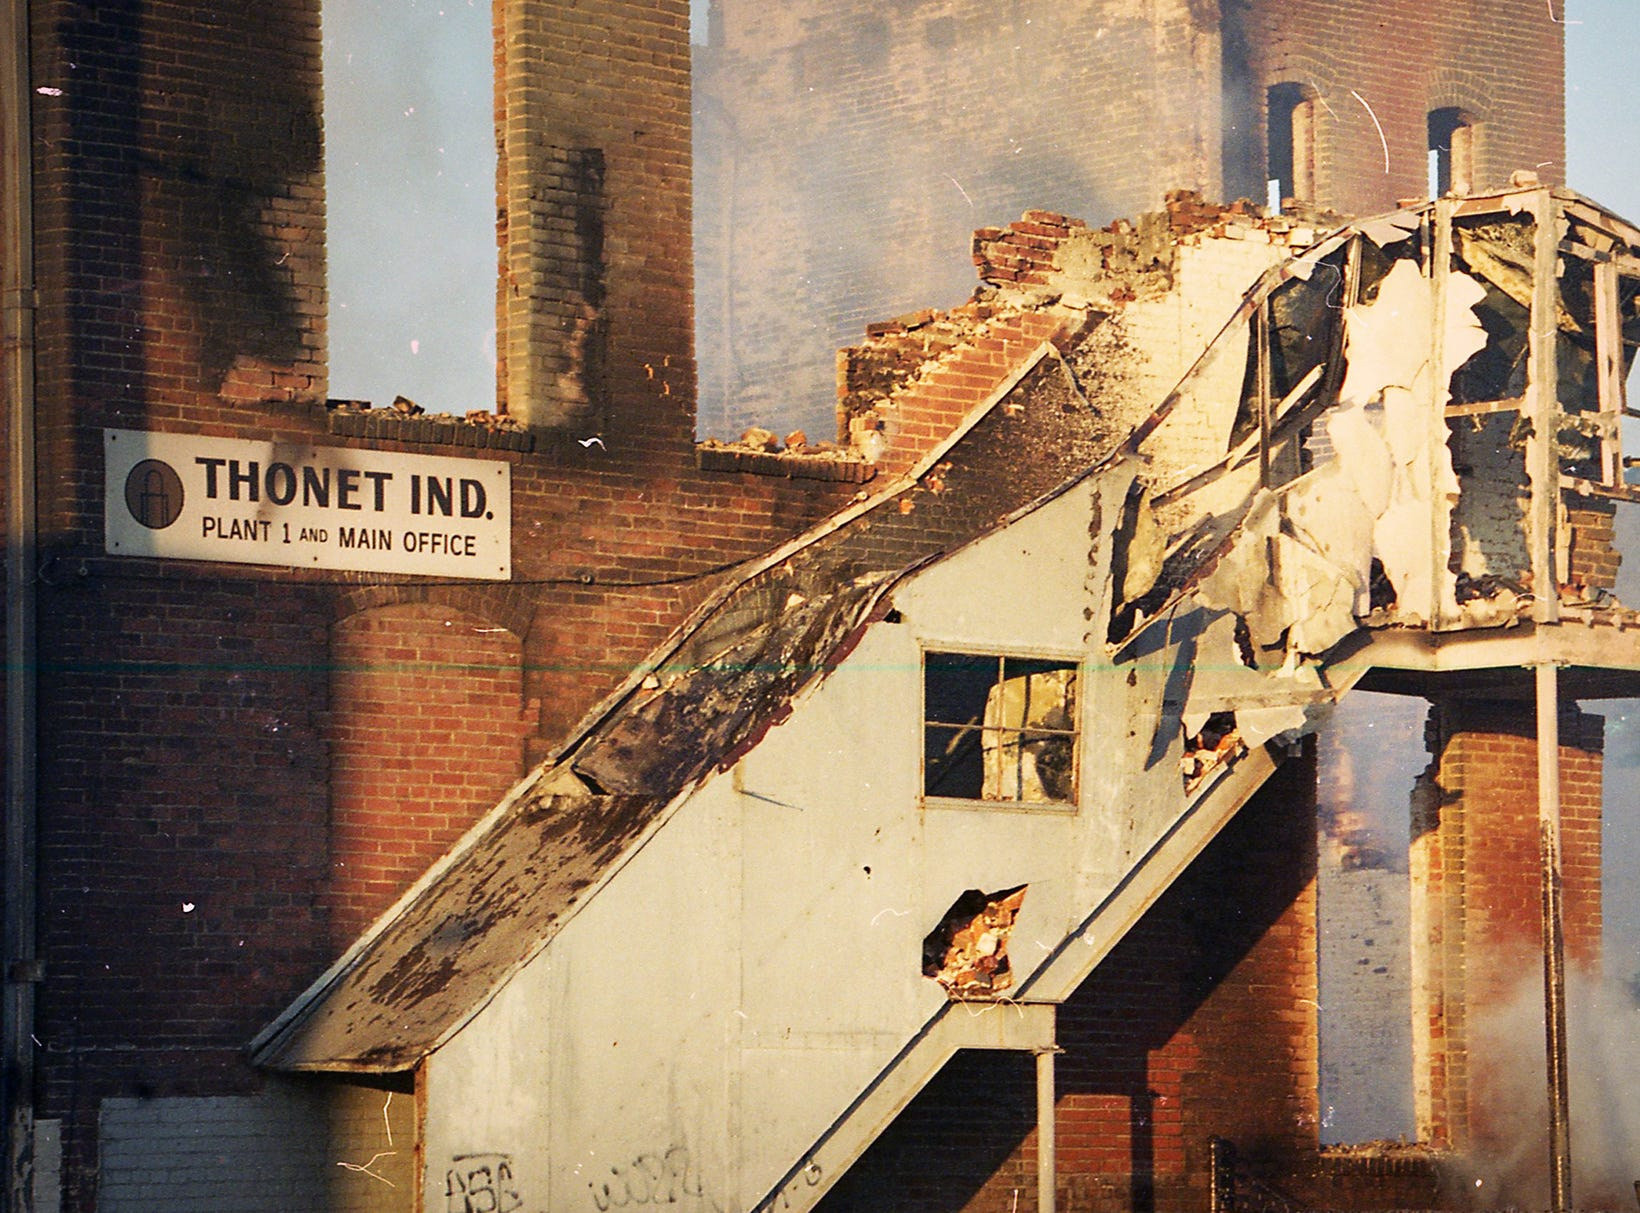 A burned out fire escape and a wall still stands the morning after the fire. A fire began at the former Thonet Furniture plant at 491 East Princess Street on December 11, 1993. Eventually, the four alarm fire spread through the complex of buildings and several other properties.